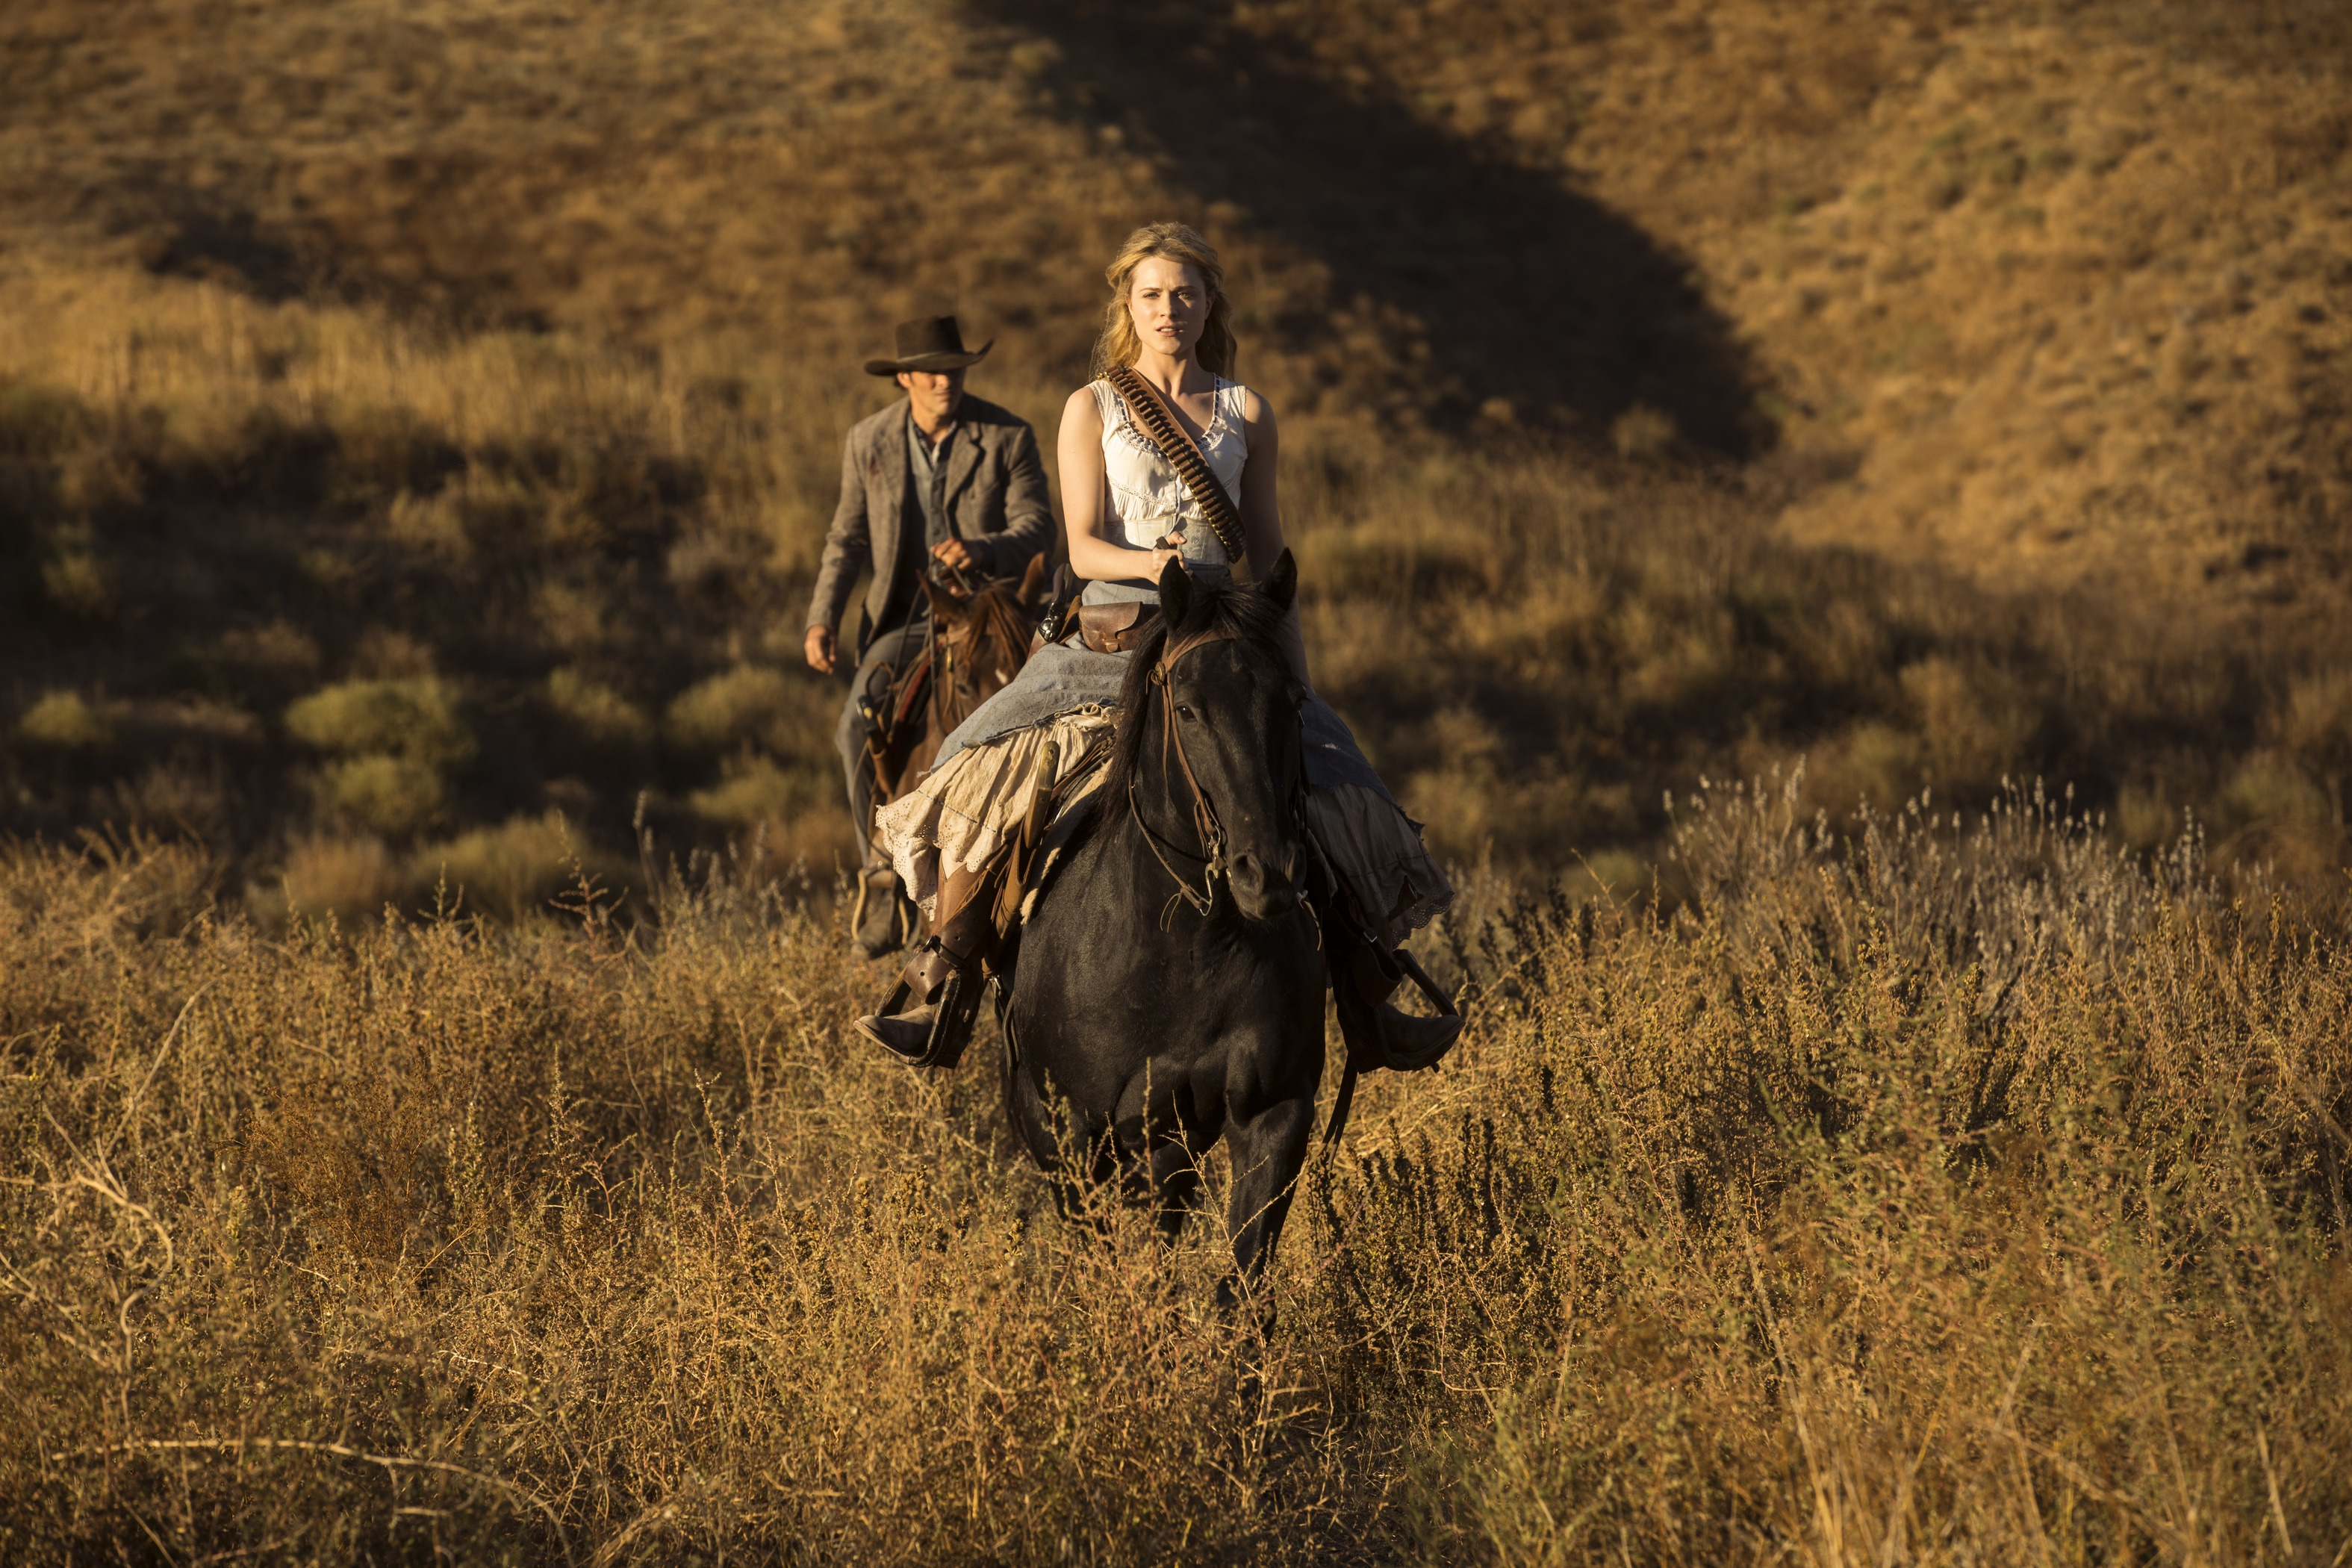 Dolores (Wood) is on a mission of vengeance in Westworld Season 2